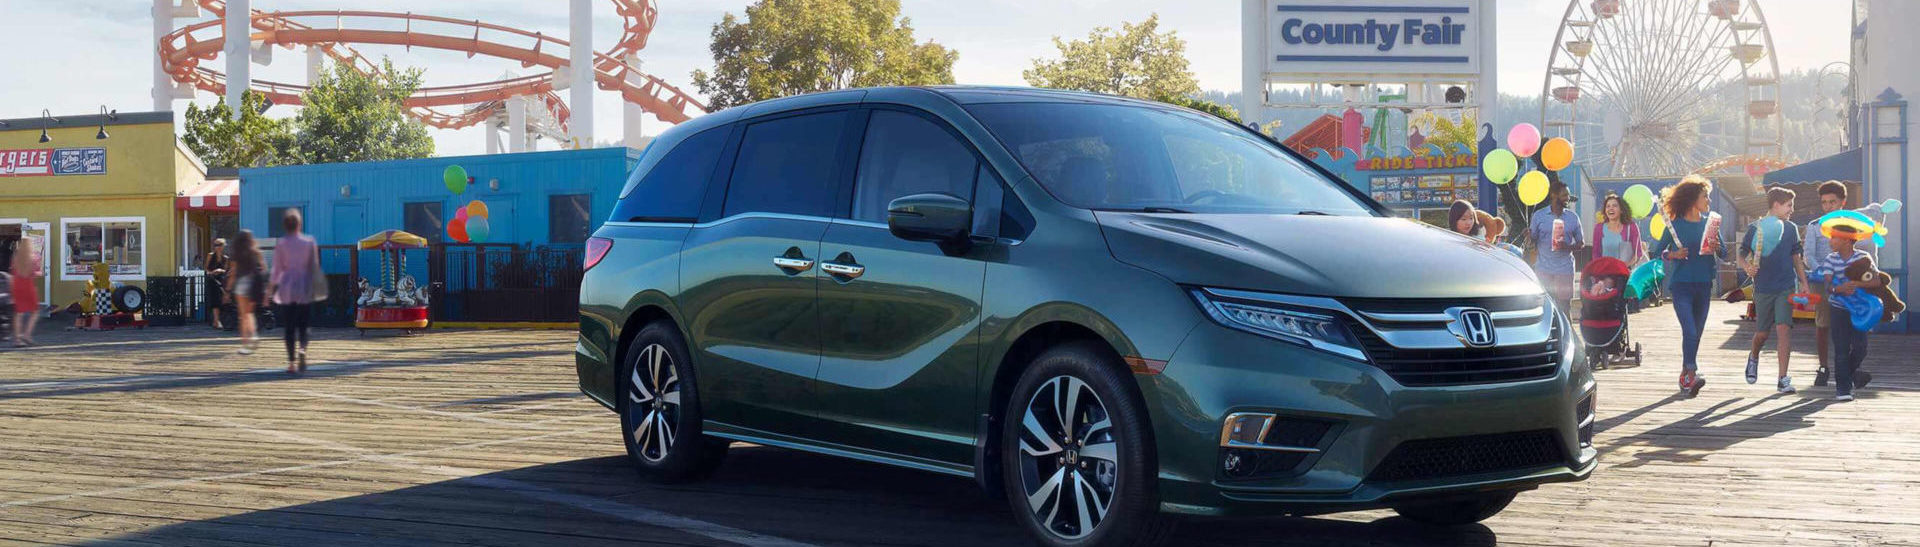 Green Honda Odyssey at the entrance of a country fair